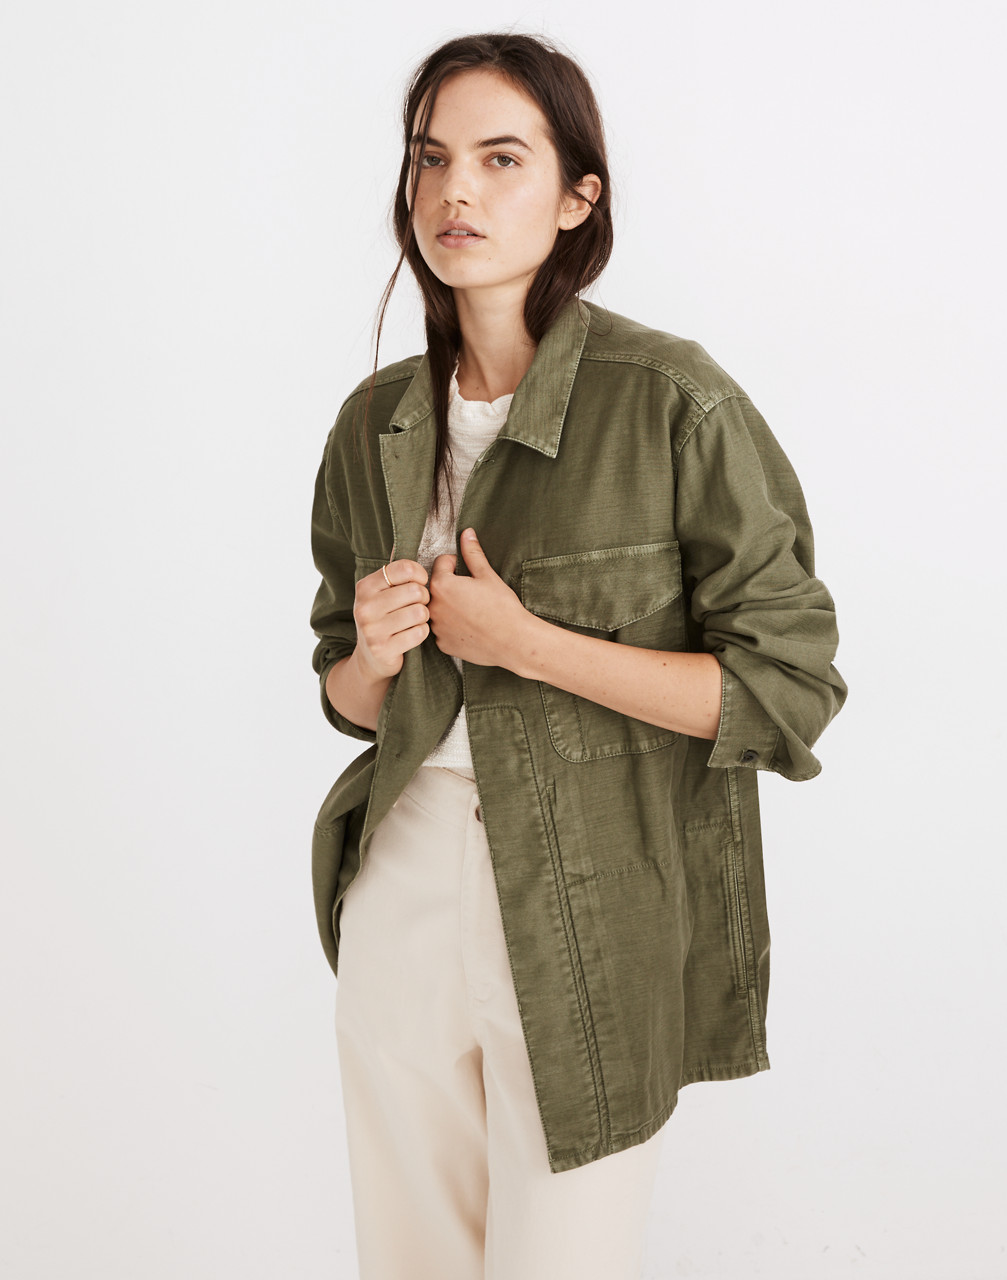 1980s Clothing, Fashion | 80s Style Clothes Military Shirt Jacket $138.00 AT vintagedancer.com